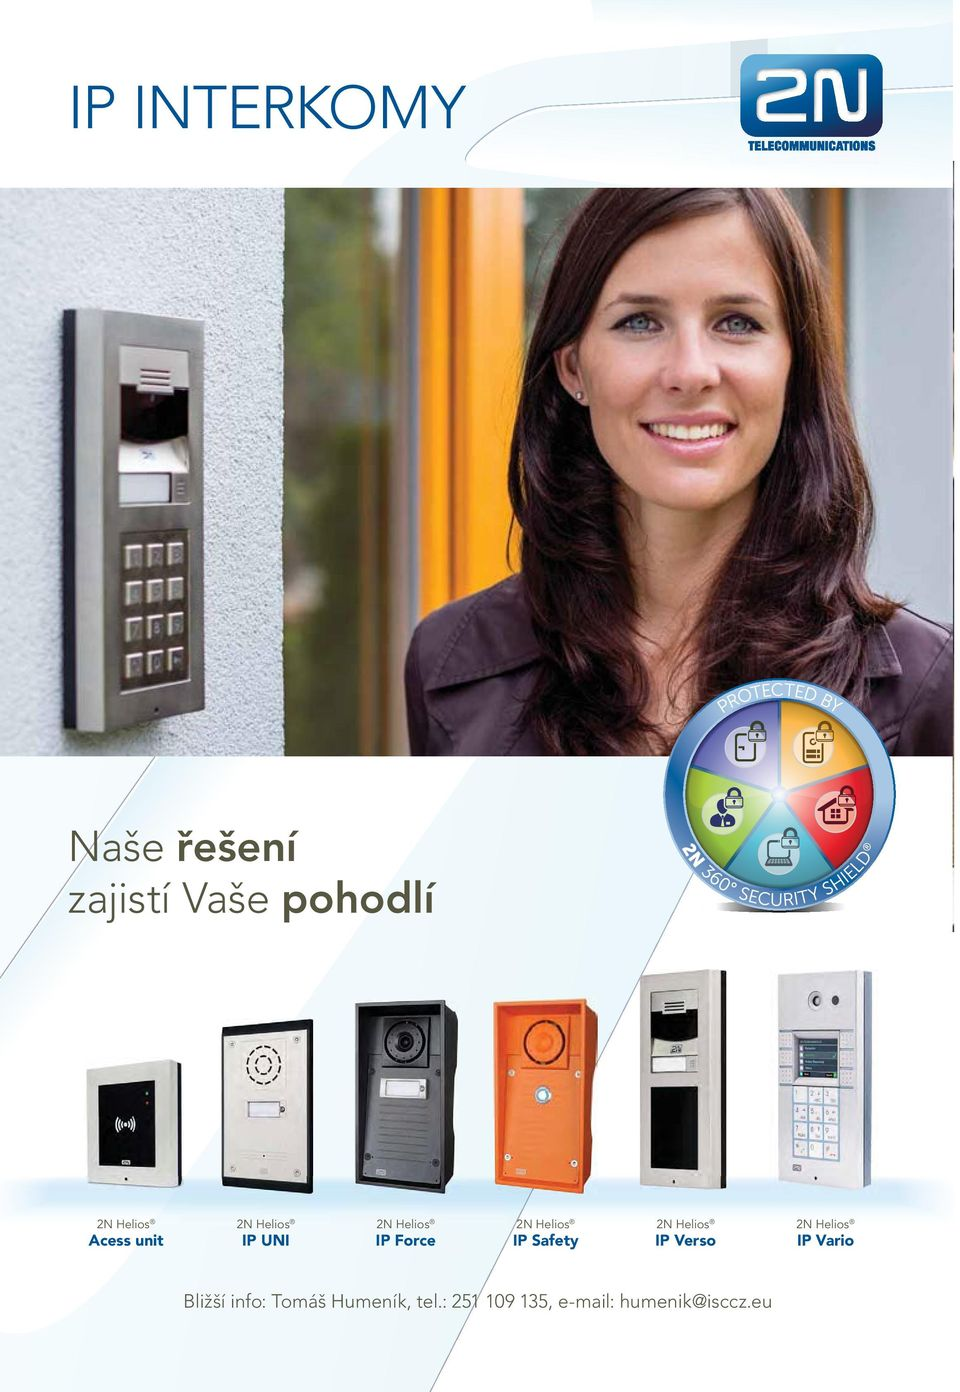 IP Safety 2N Helios IP Verso 2N Helios IP Vario Bližší